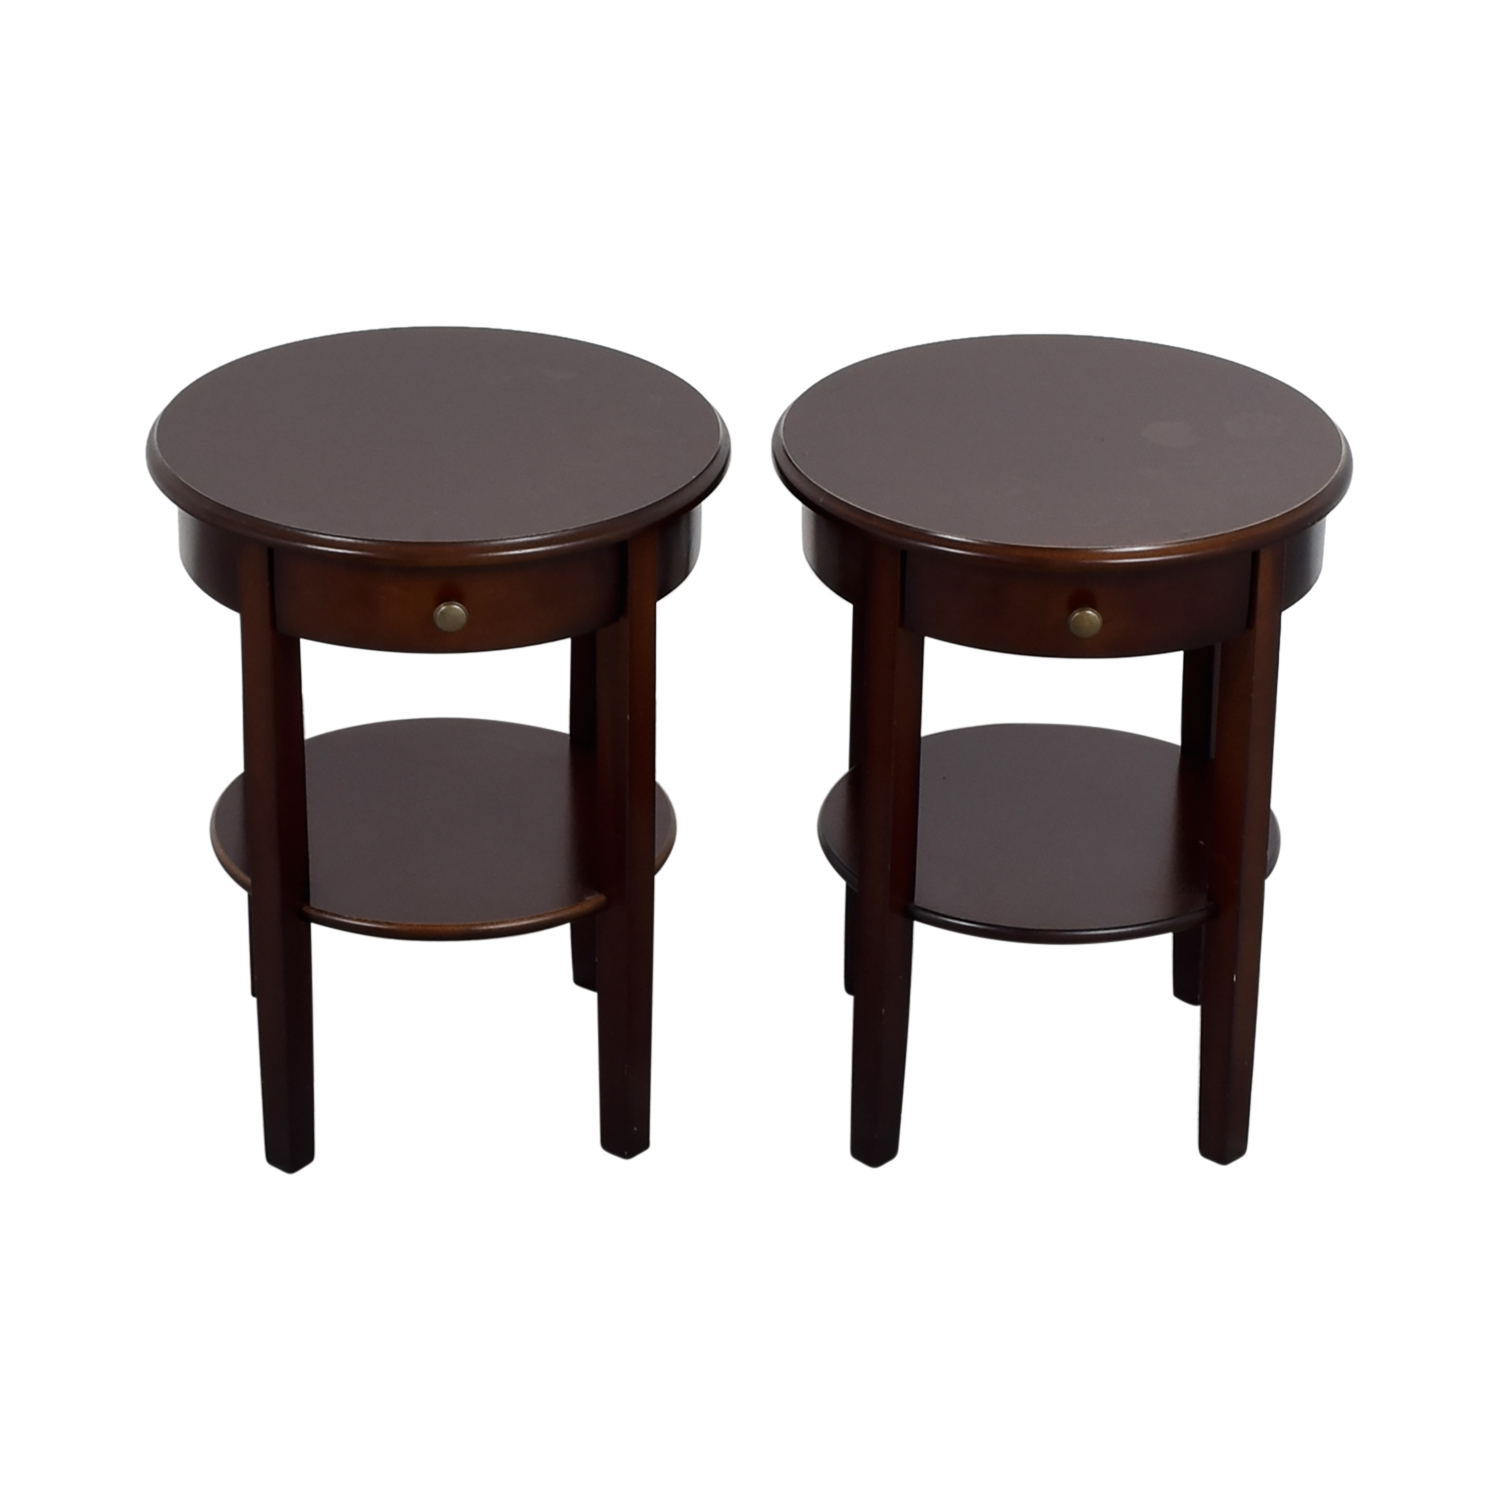 IKEA Circle Nightstands / End Tables